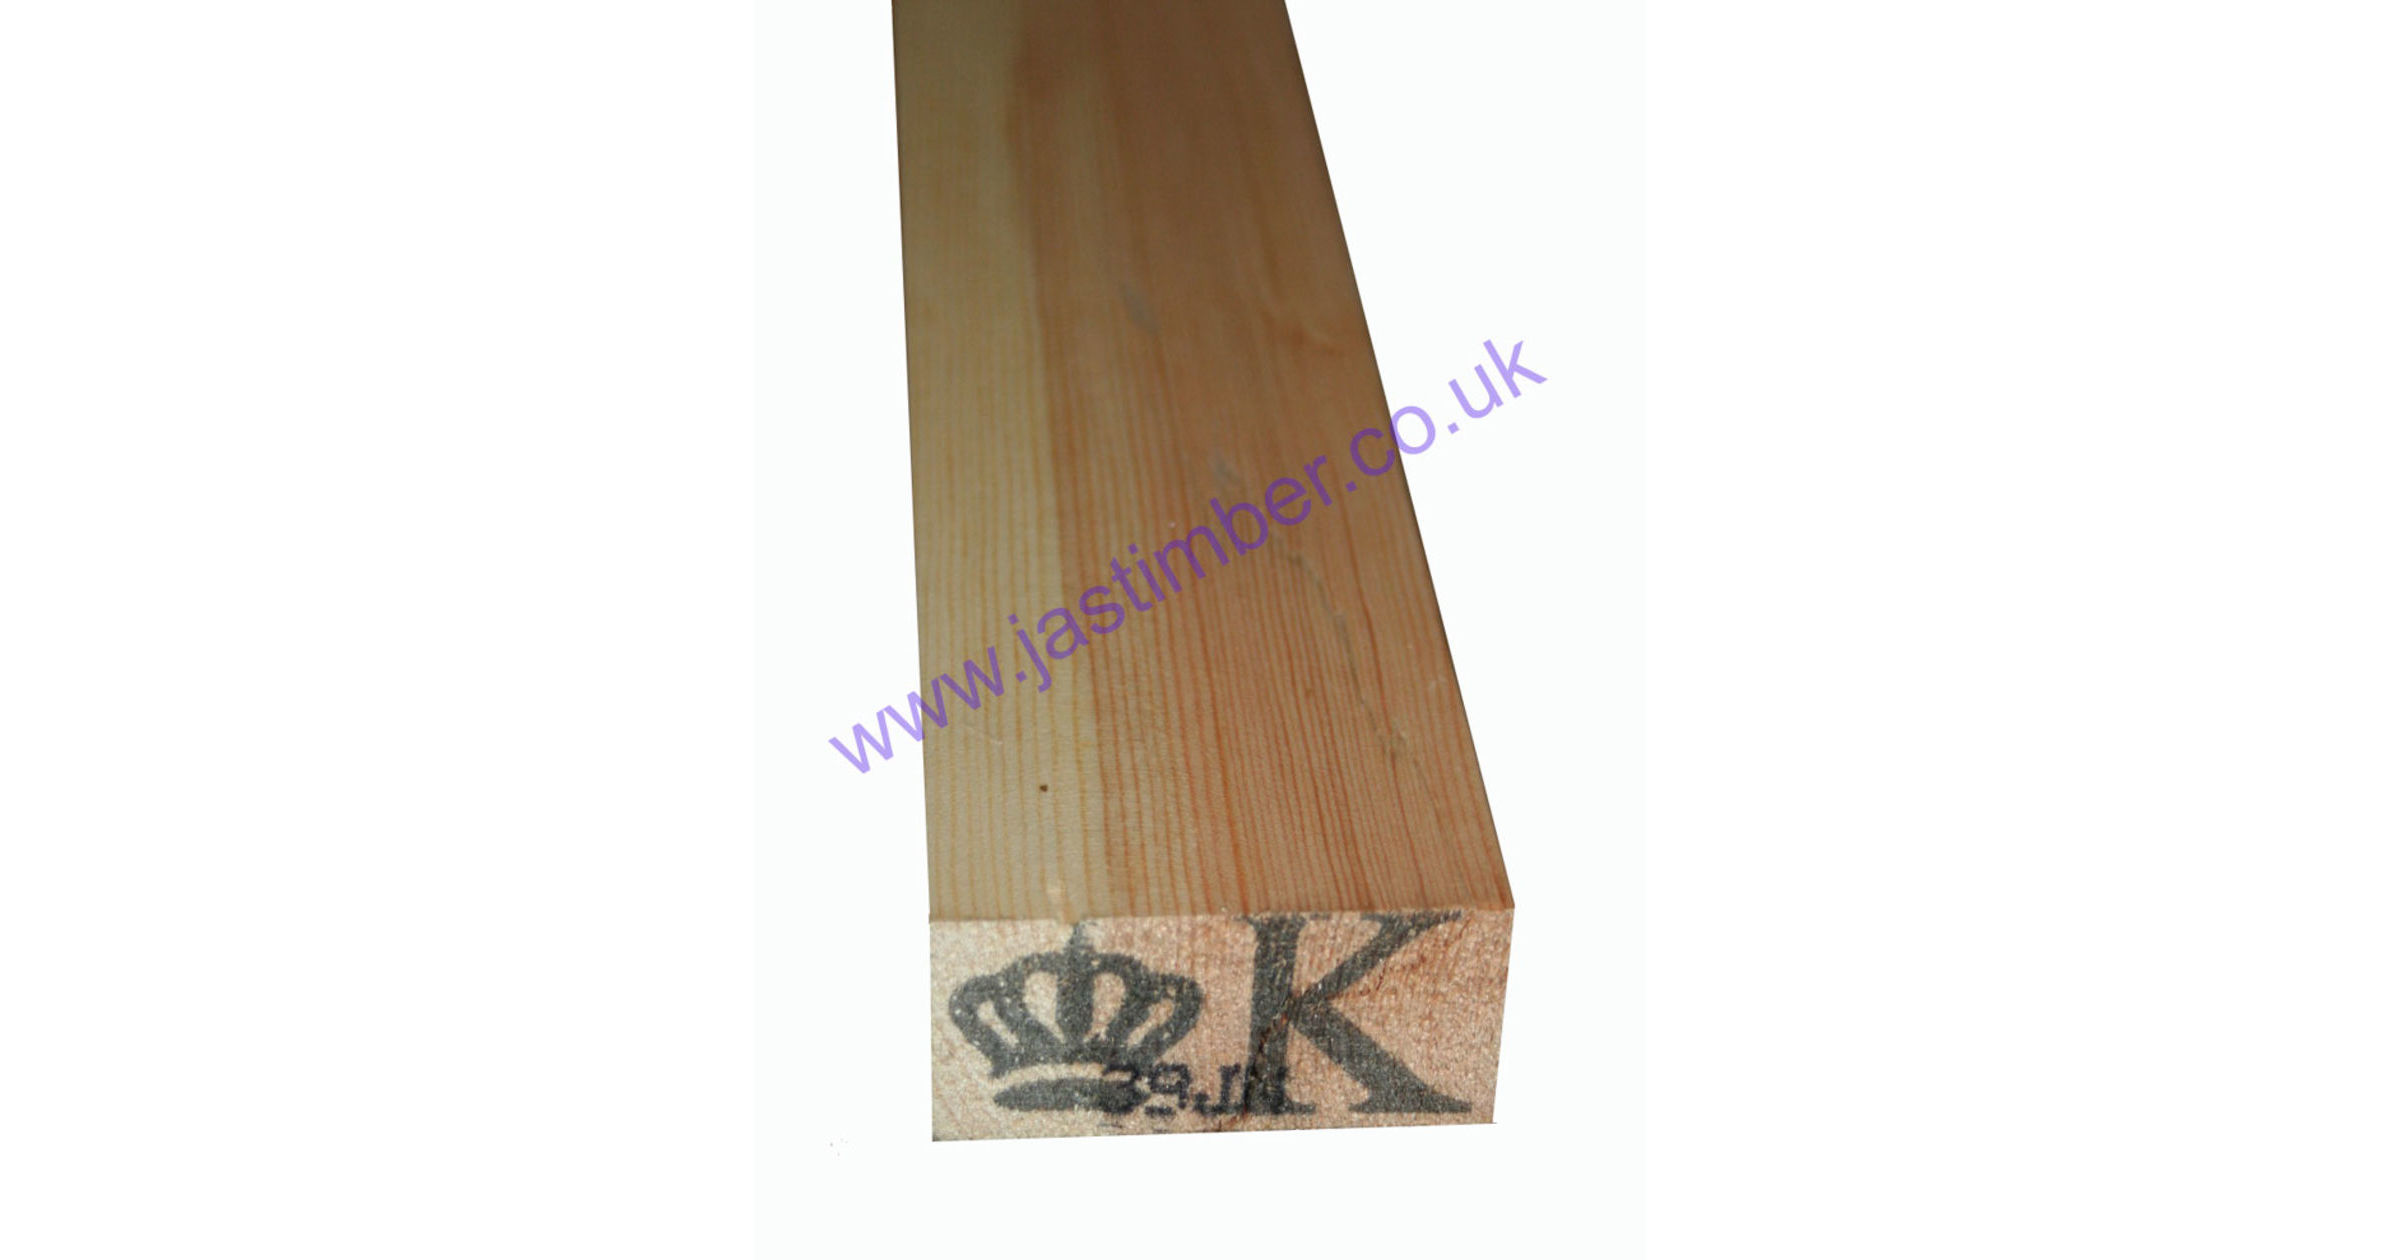 2x1.5 Planed *Redwood - Scandinavian Softwood* (PSE ex 38x50mm - Finished: 32x44mm)